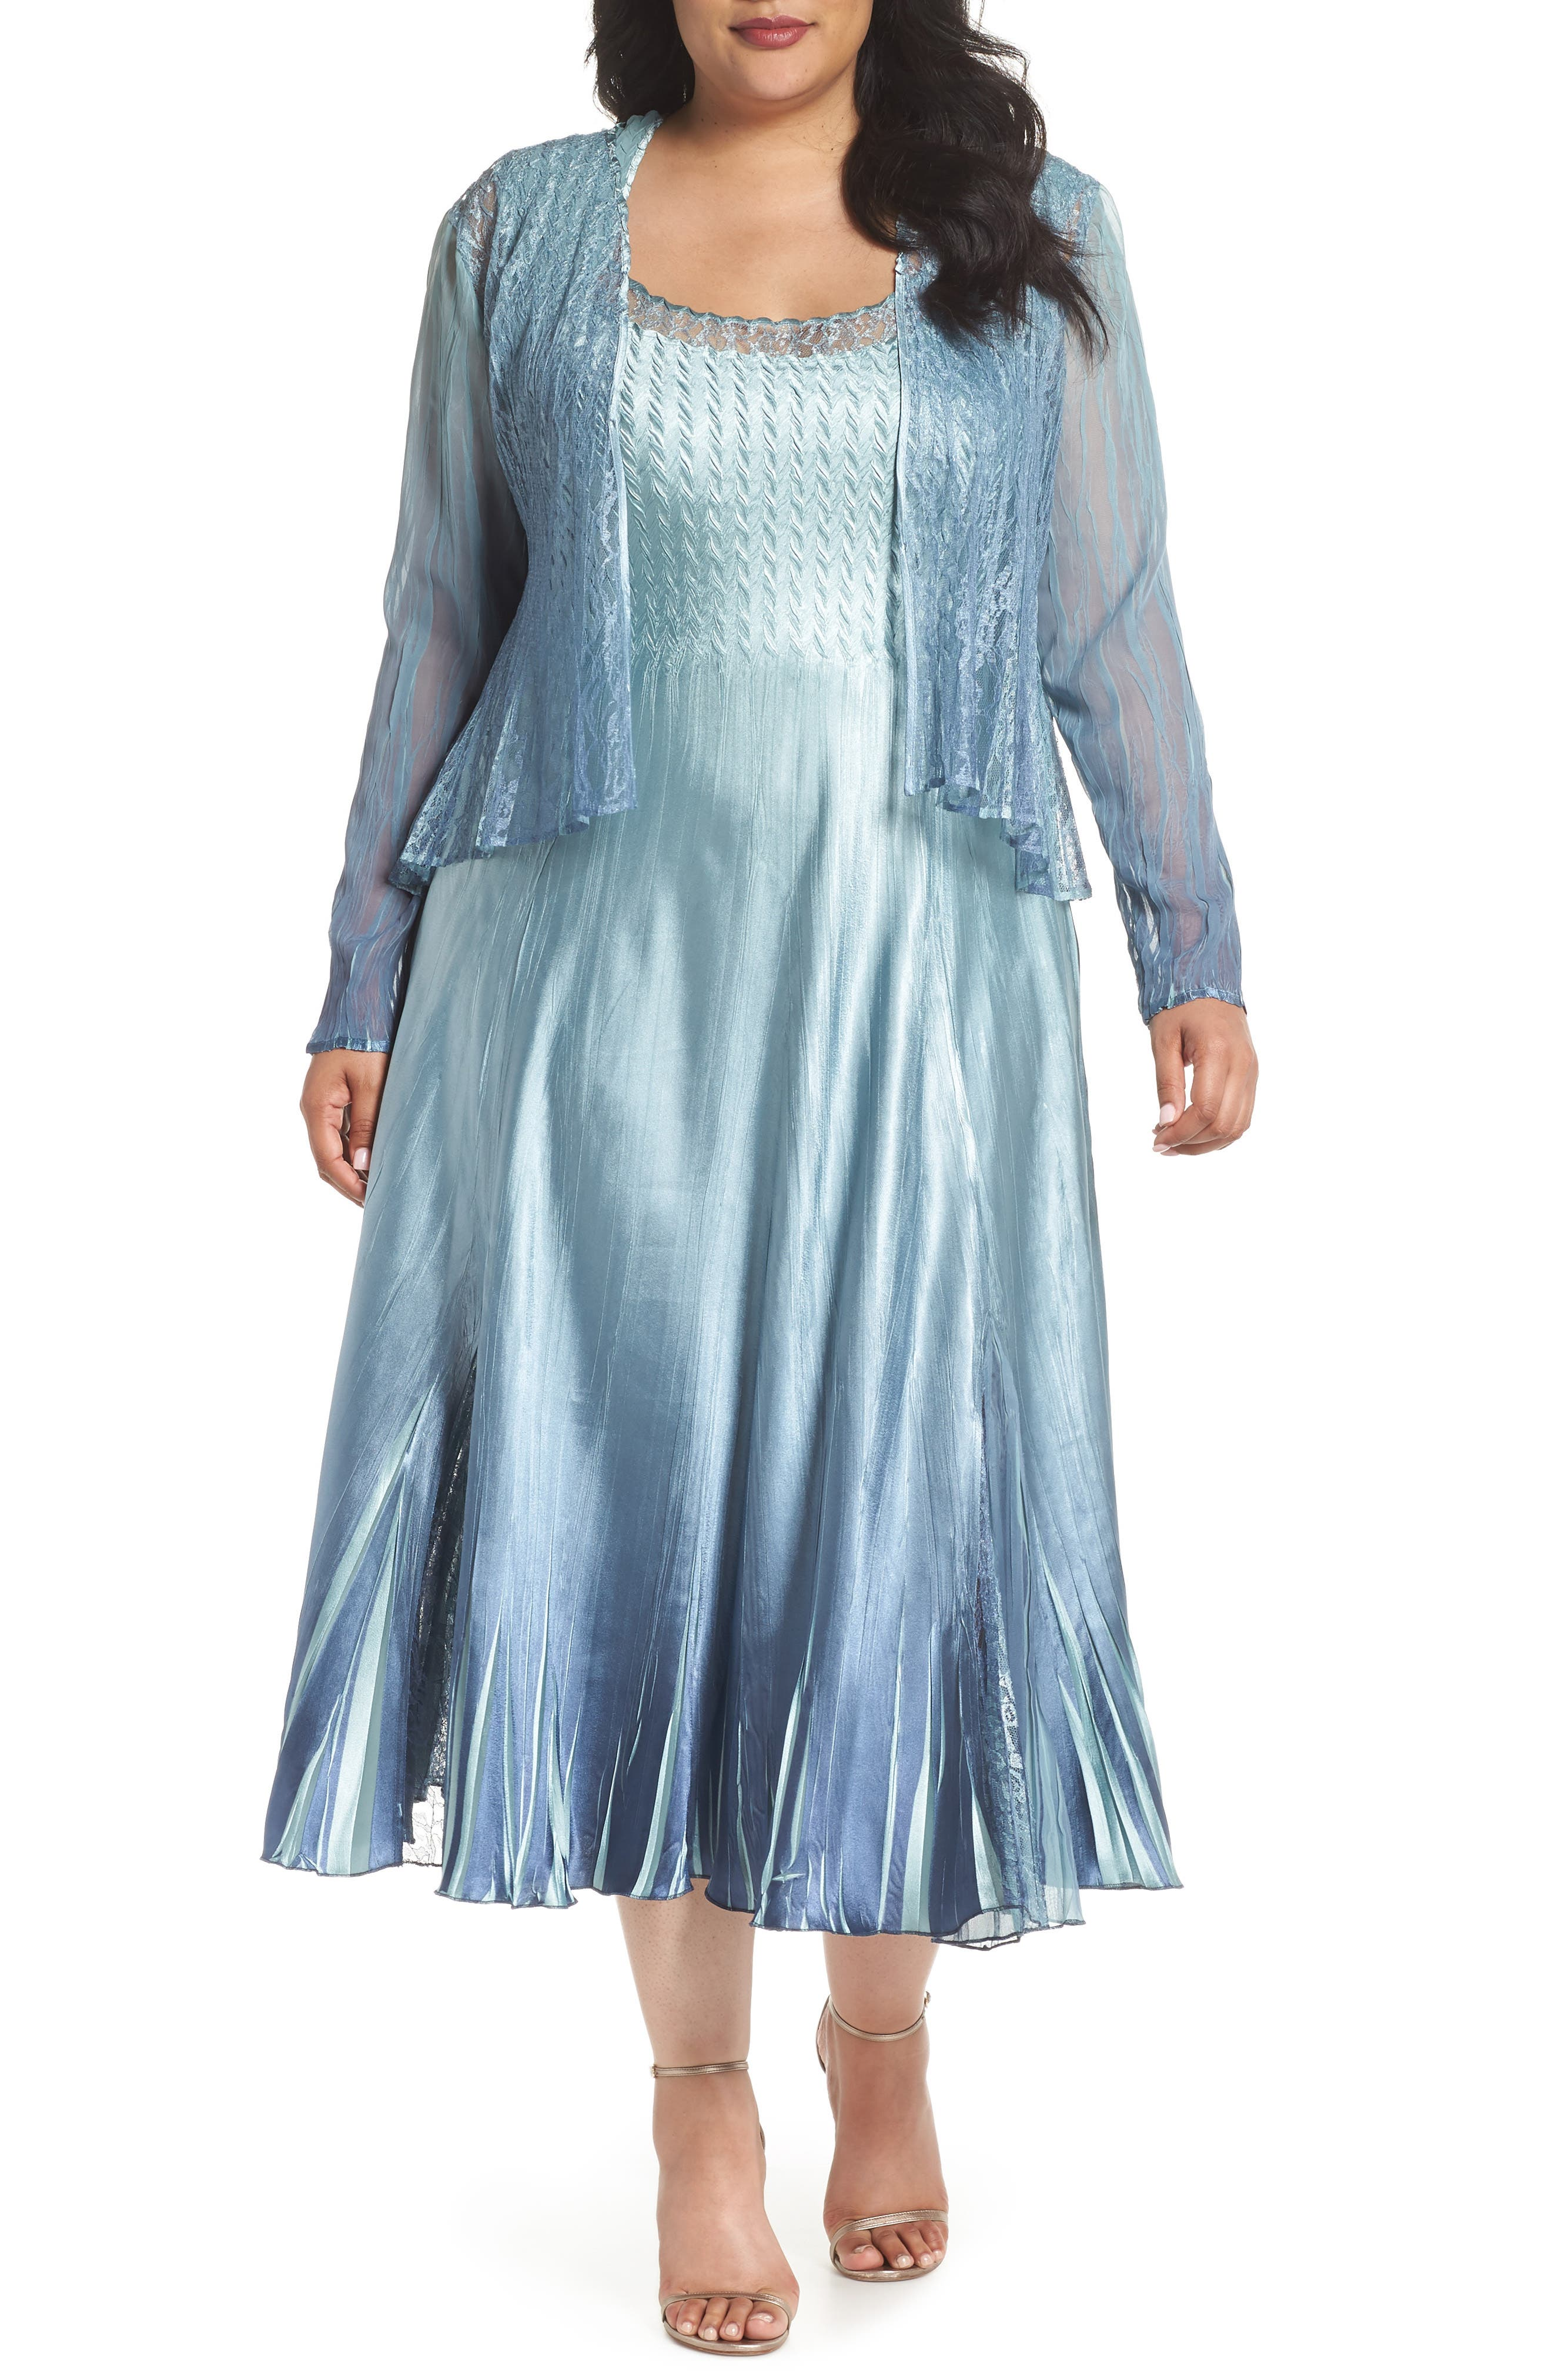 Lace & Charmeuse A-Lined Dress with Jacket,                             Main thumbnail 1, color,                             Ocean Blue Night Ombre